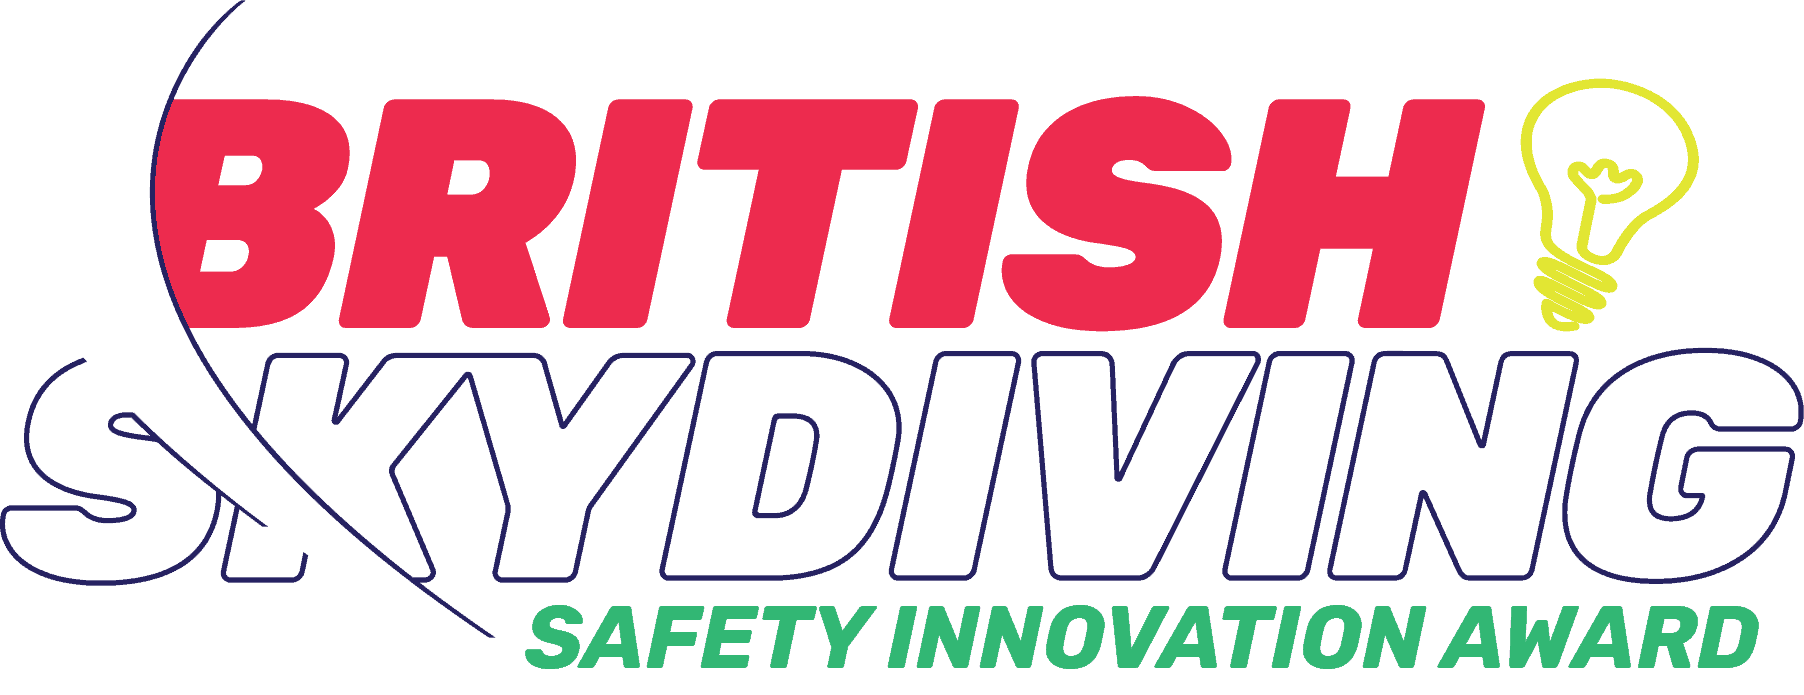 British_skydiving_Safety_Innovation_Award